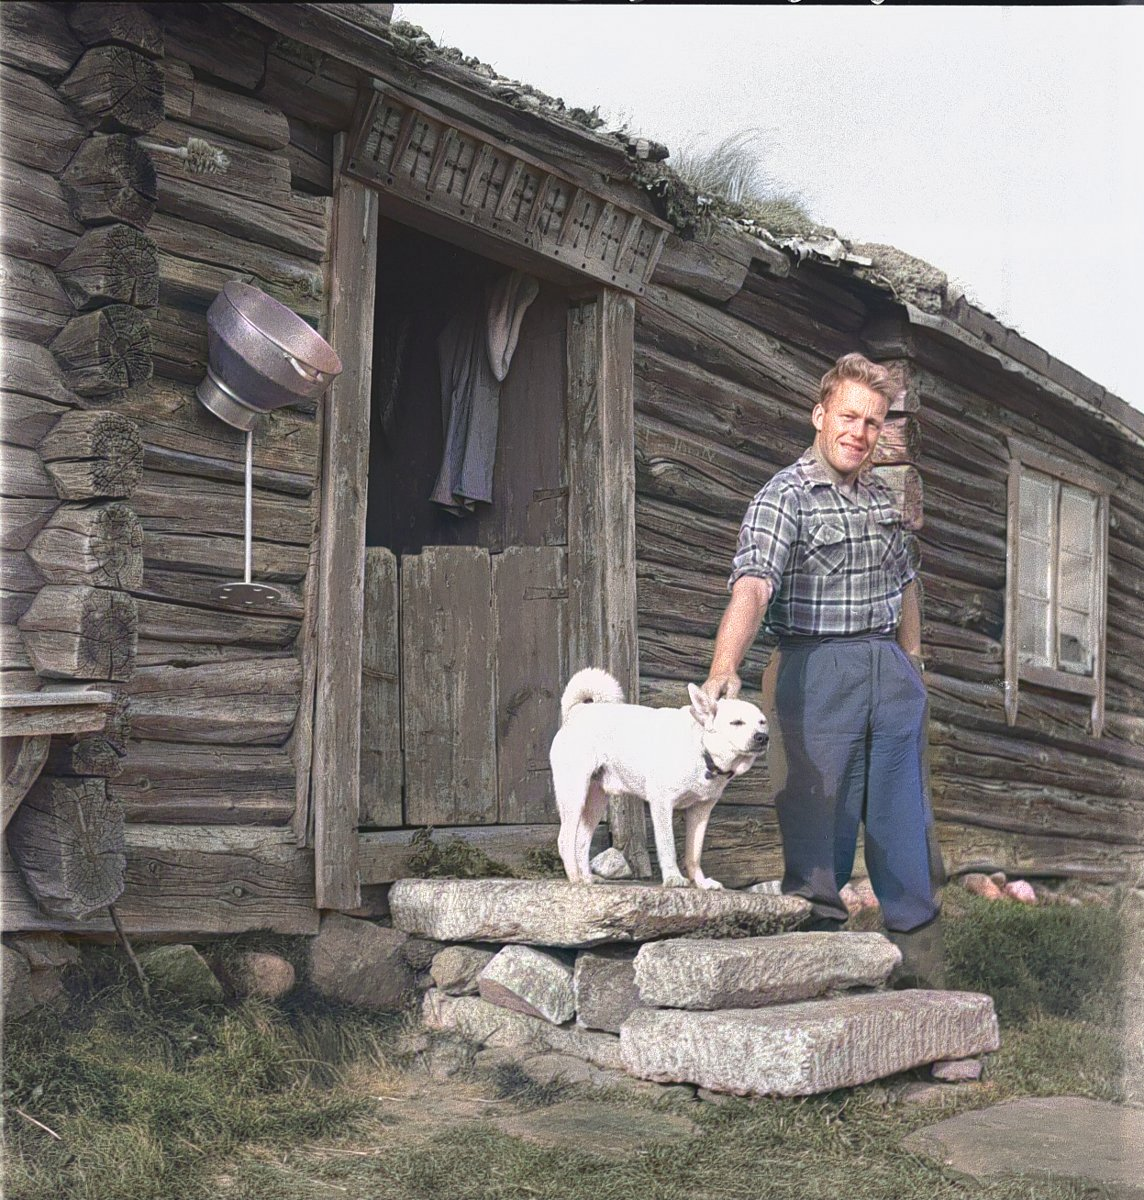 Amund Randen and his Norwegian Buhund - at a summer pasture farm in Folldal, Hedmark, Norway - in 1959. | Photo: Per Magne Grue - Anno Musea i Nord-Østerdalen cc by DeOldify.